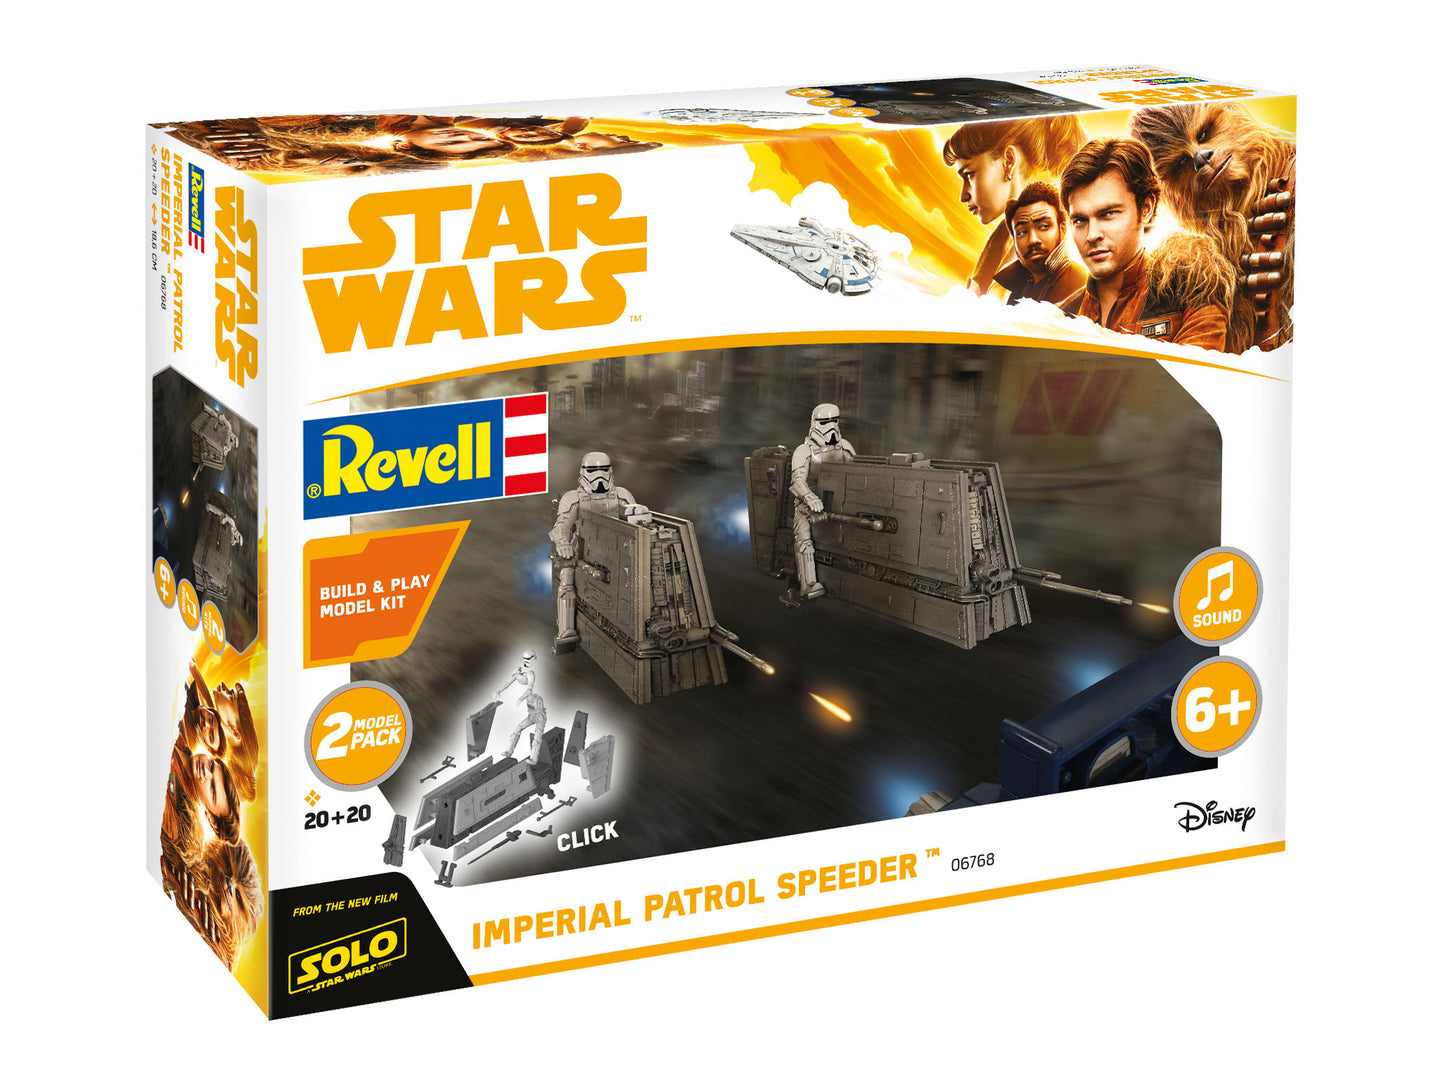 Revell Star Wars Snaptite 1/28 Build & Play Imperial Patrol Speeder 851676